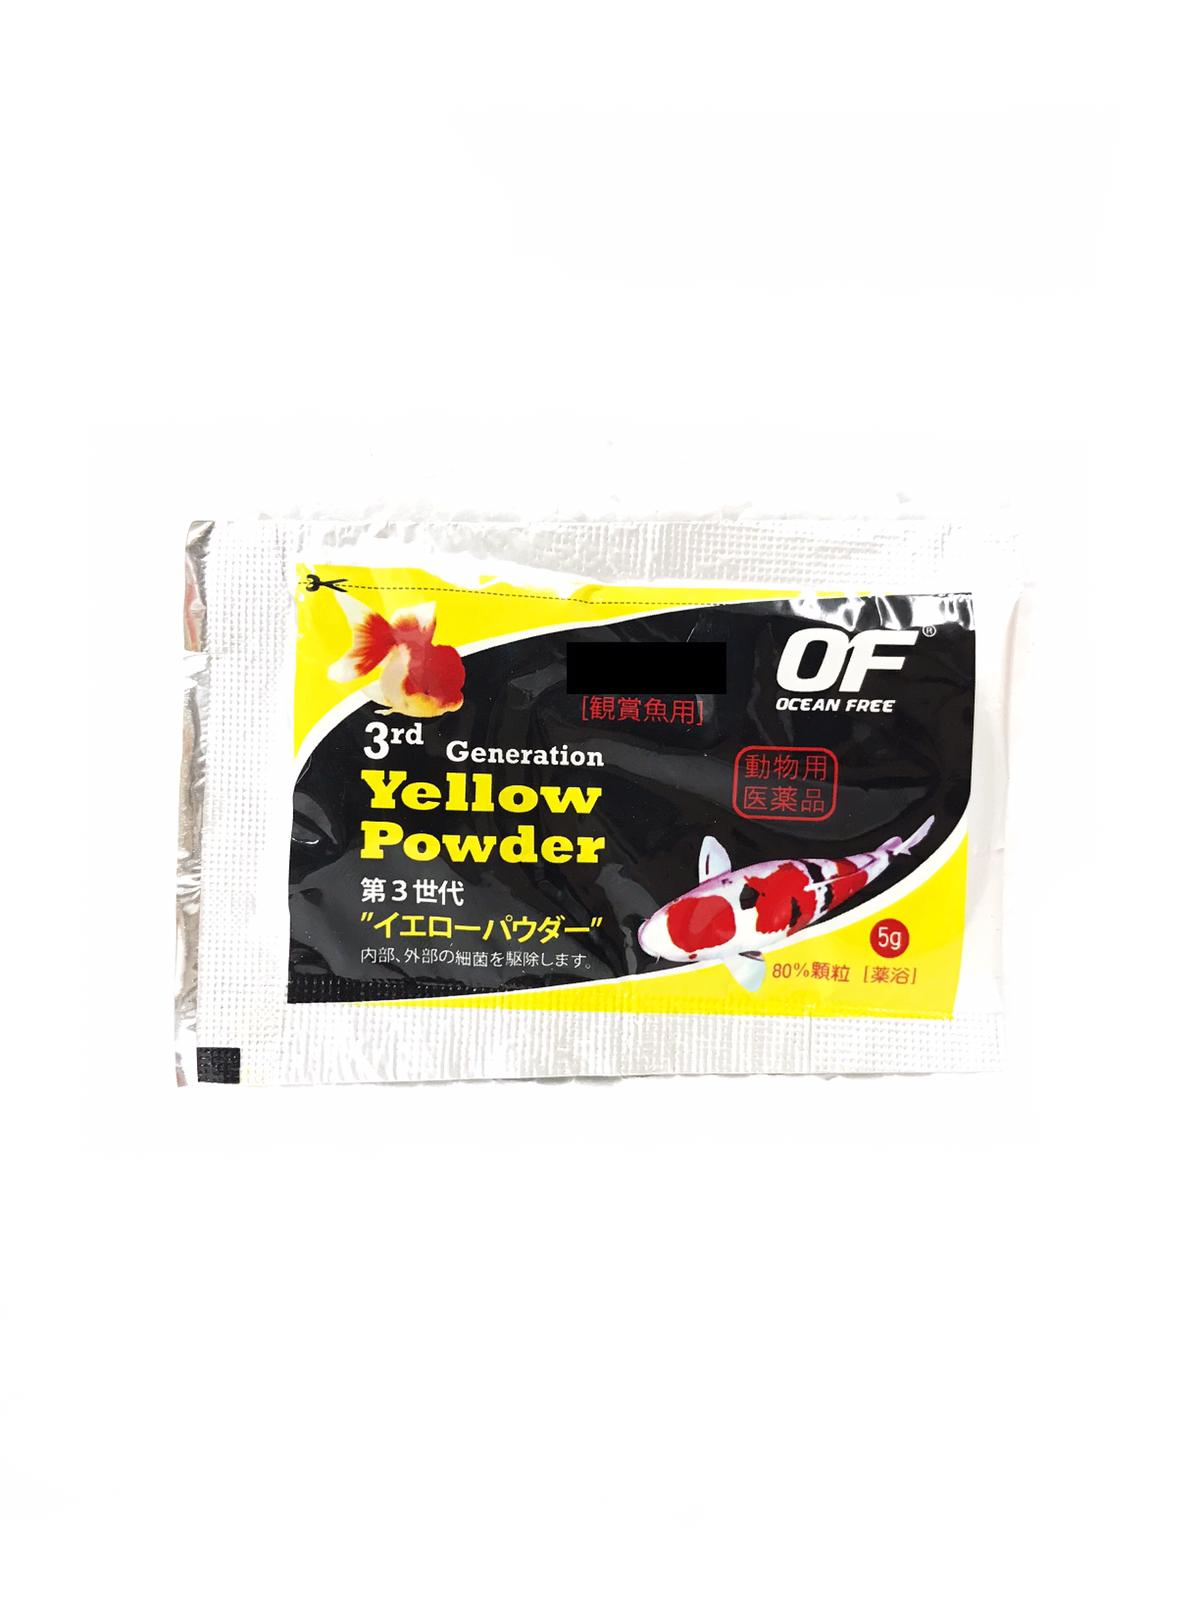 OF 3rd Generation Yellow Powder